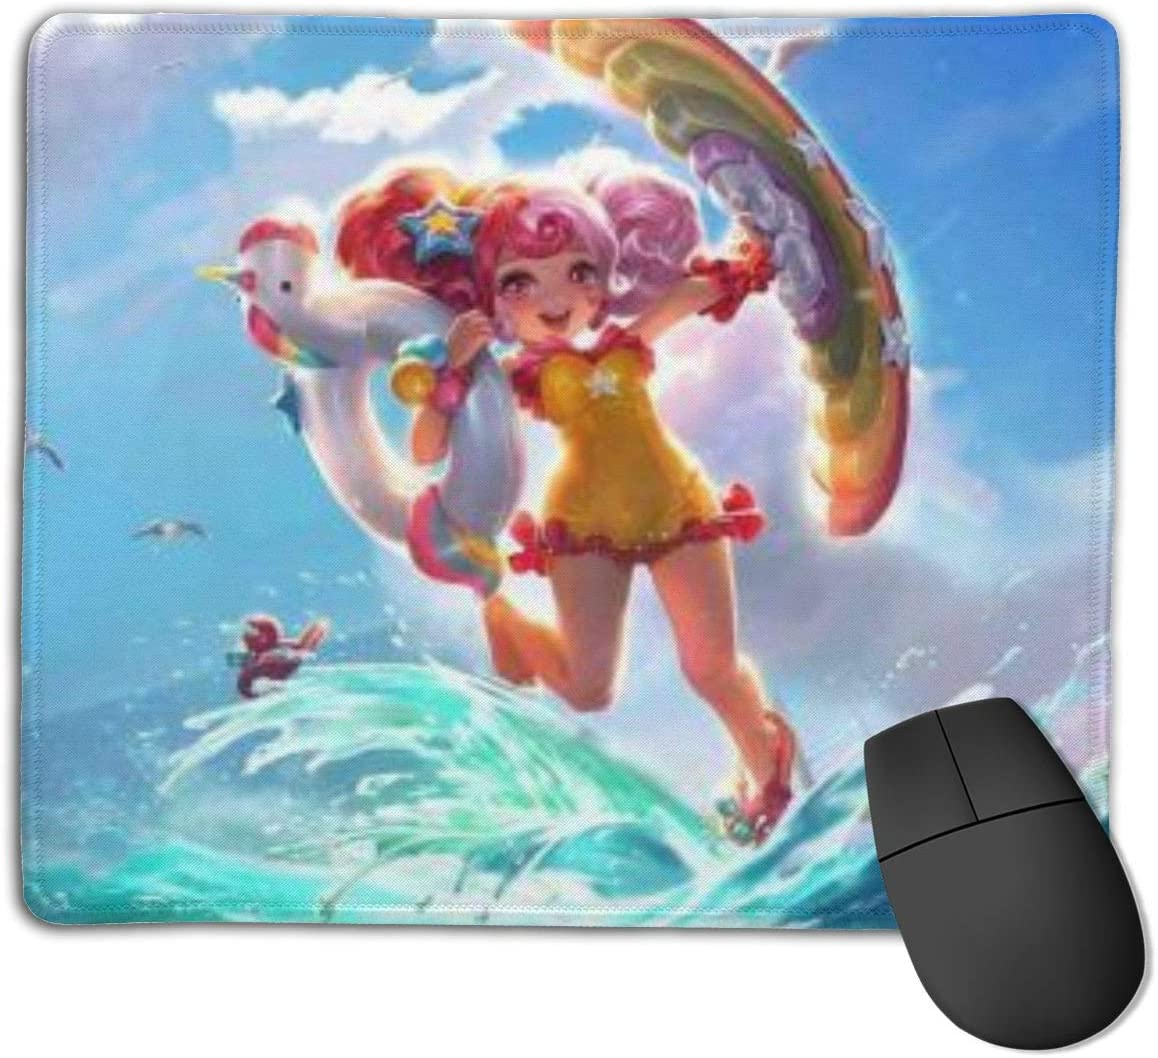 King Glory Customized Designs Non-Slip Rubber Base Gaming Mouse Pads for Mac,22cm×18cm, Pc, Computers. Ideal for Working Or Game